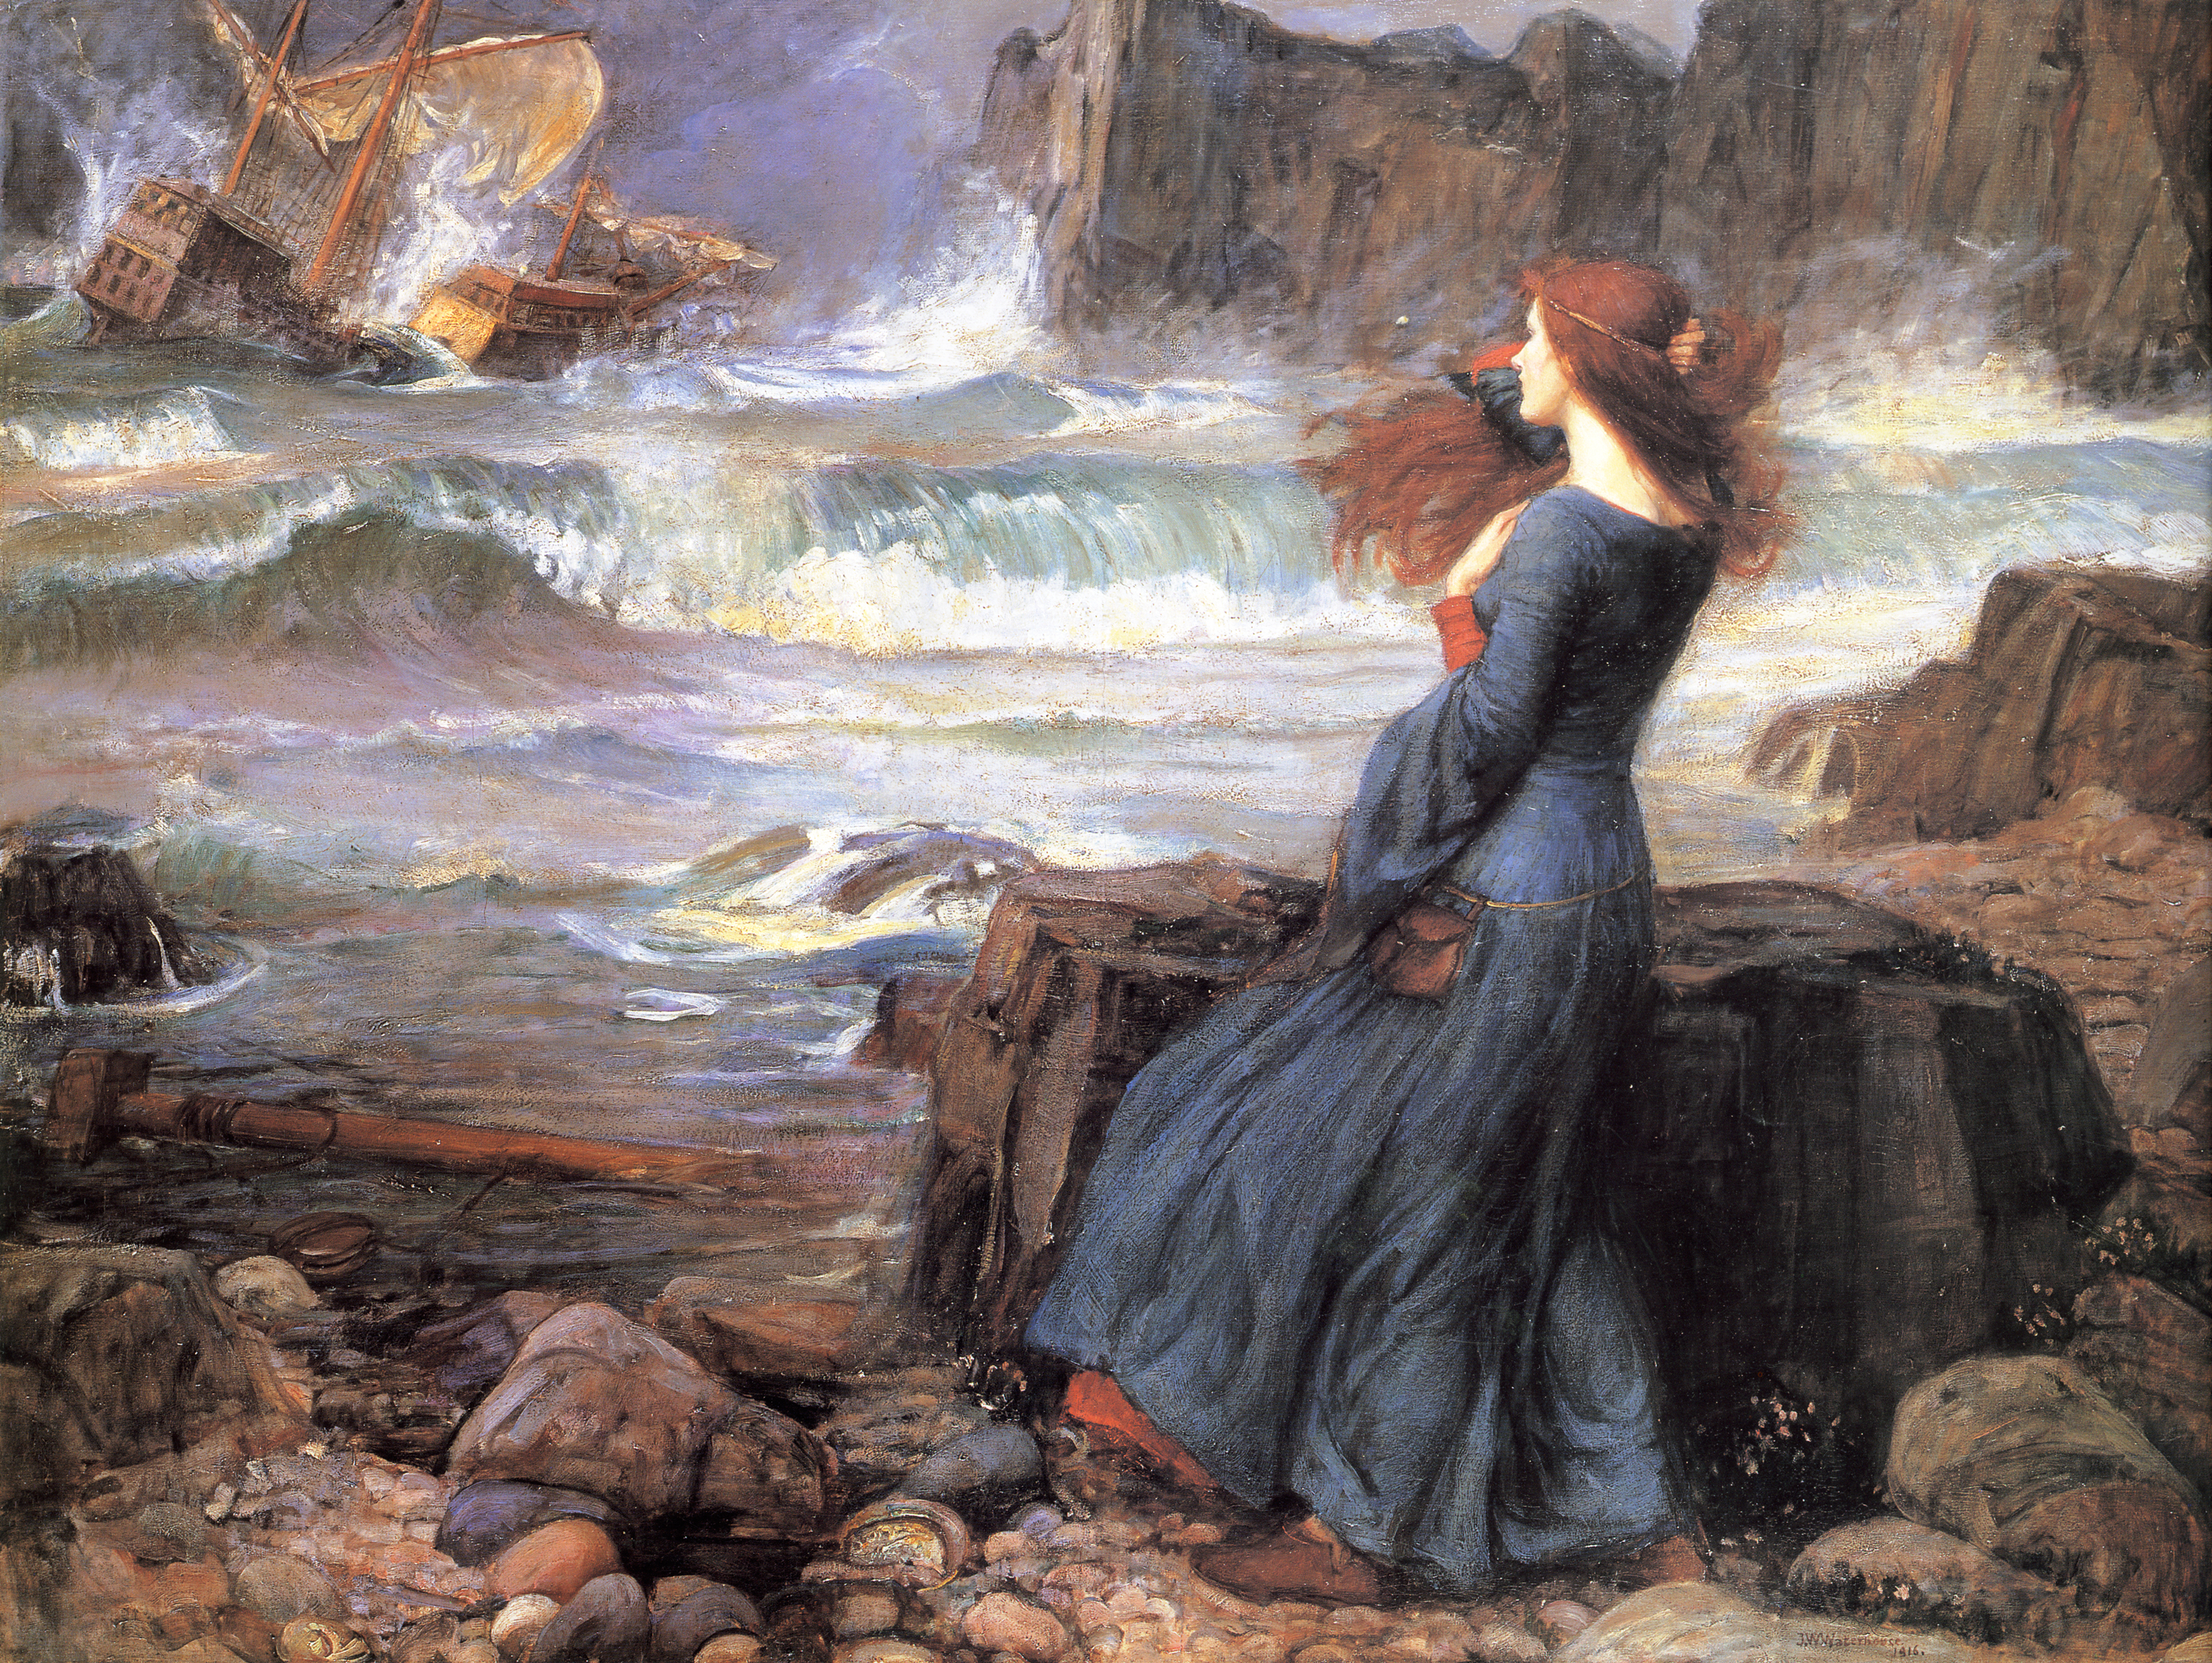 Waterhouse's